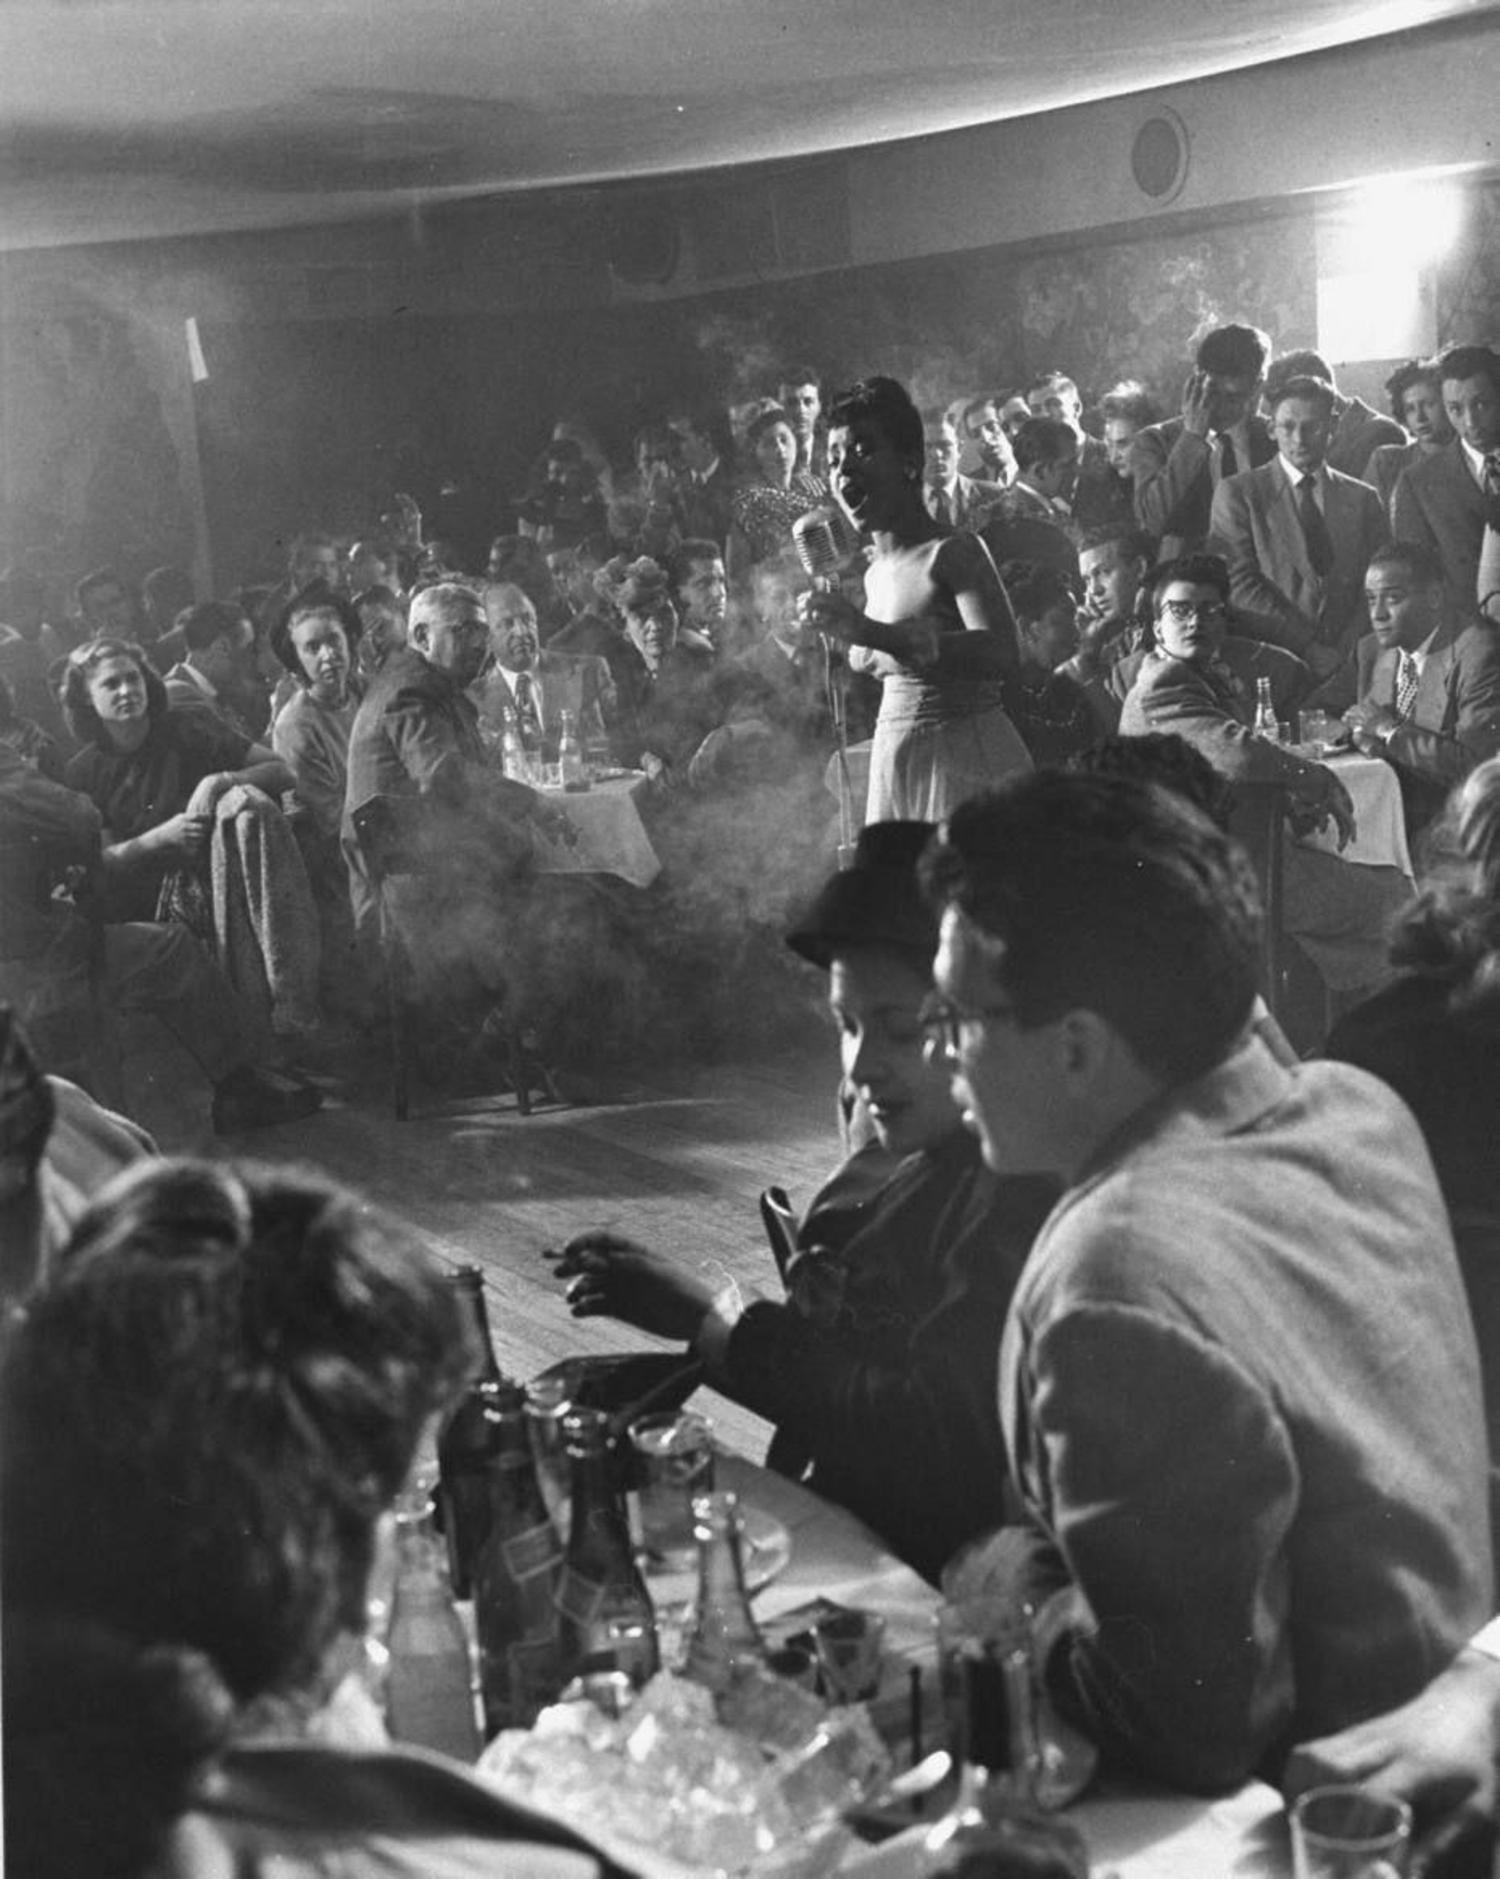 Inside Cafe Society, the first racially integrated nightclub in NYC circa early 1940s